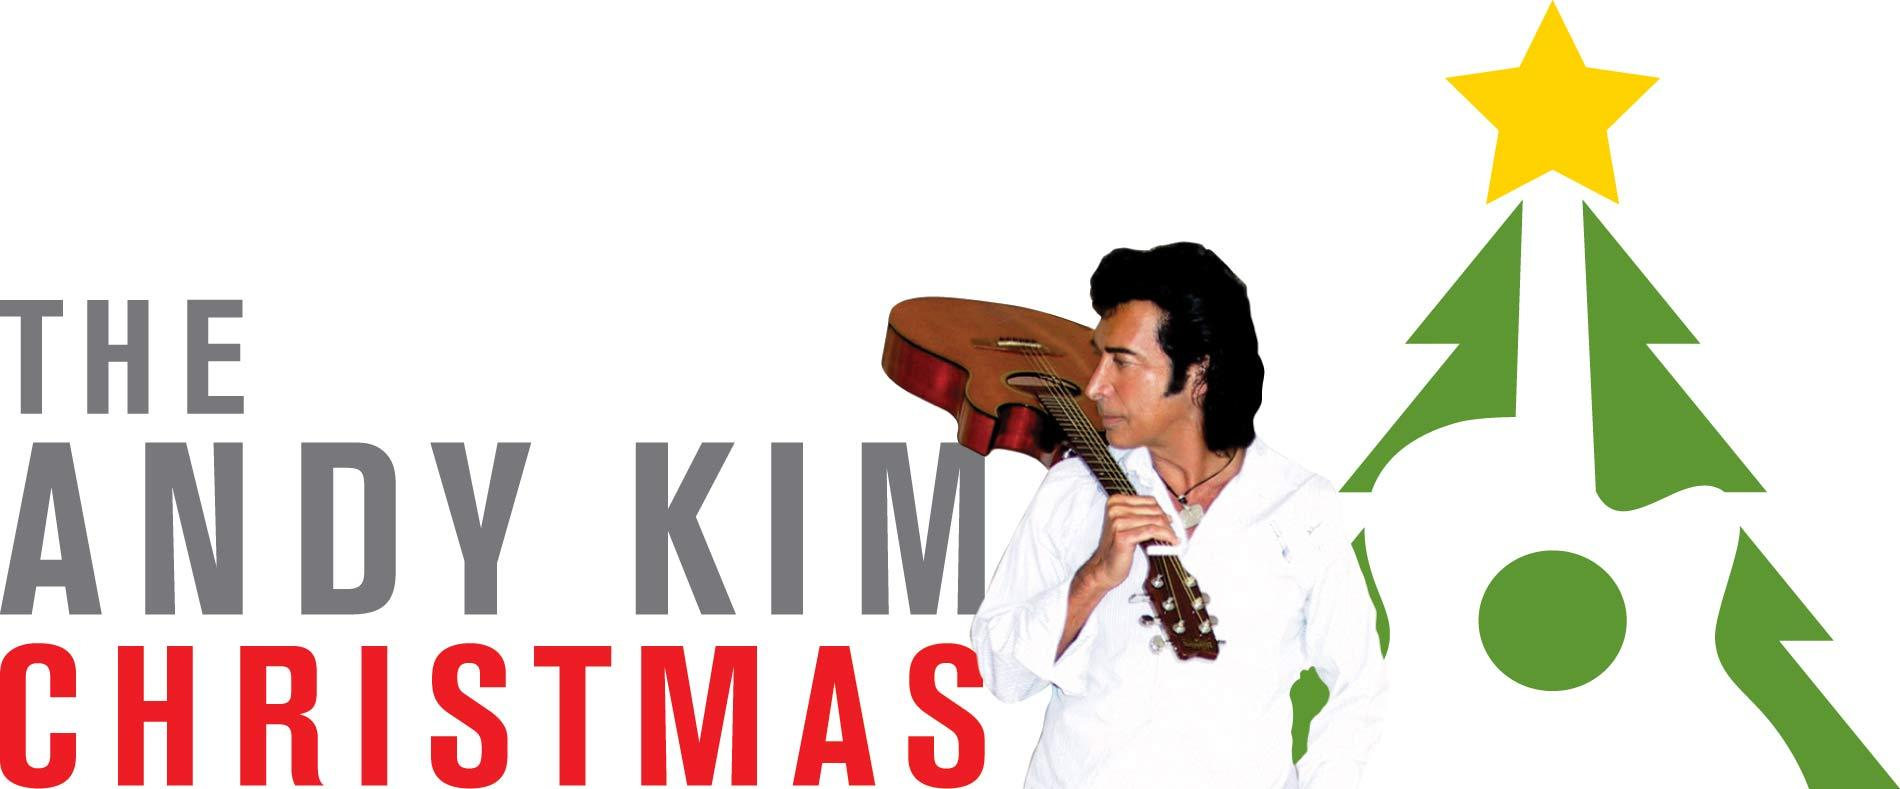 The 12th Annual Andy Kim Christmas